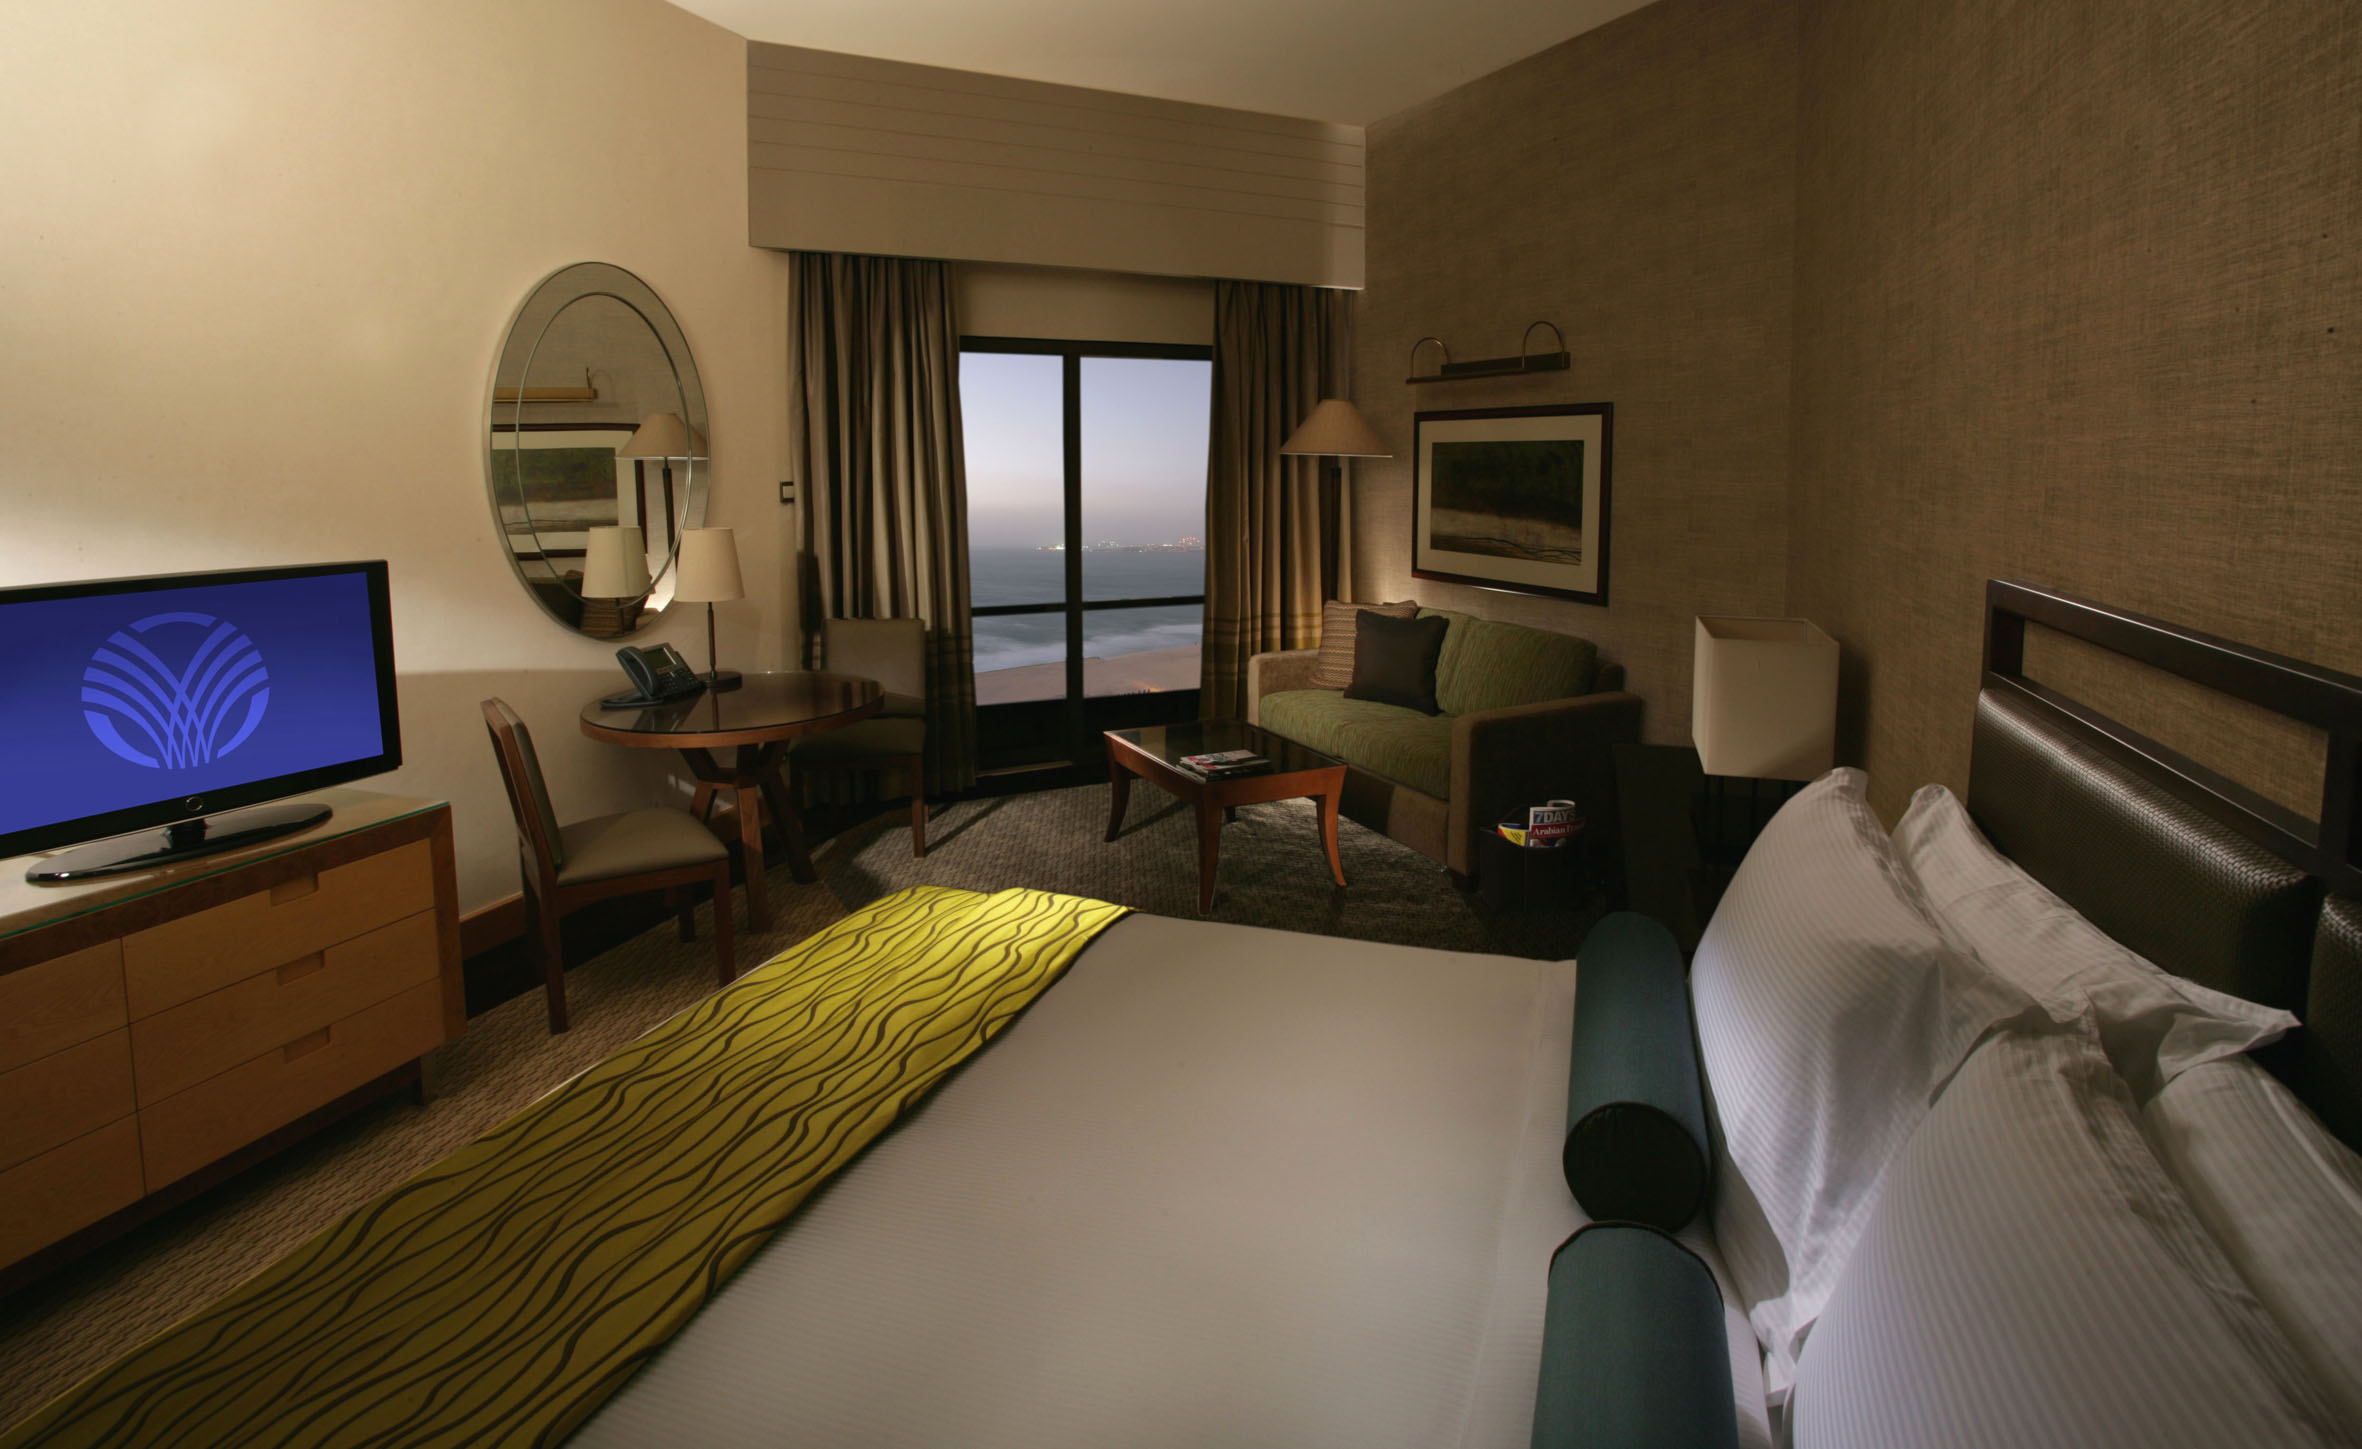 Cheap hotels in dubai cheap dubai hotels le dubai for Cheap hotels